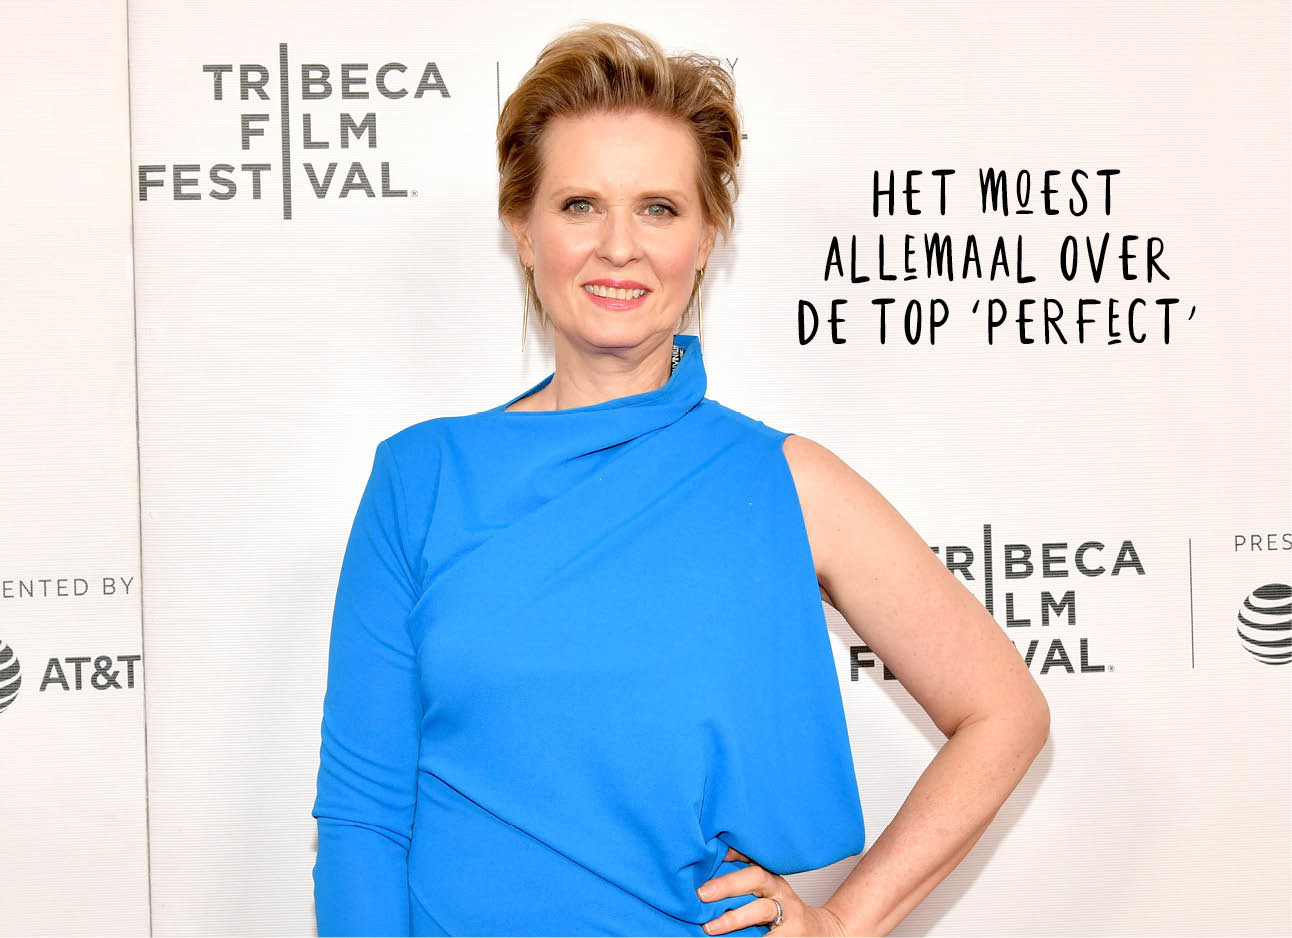 Cynthia Nixon sex and the city op de rode loper in een blauwe jurk lachend